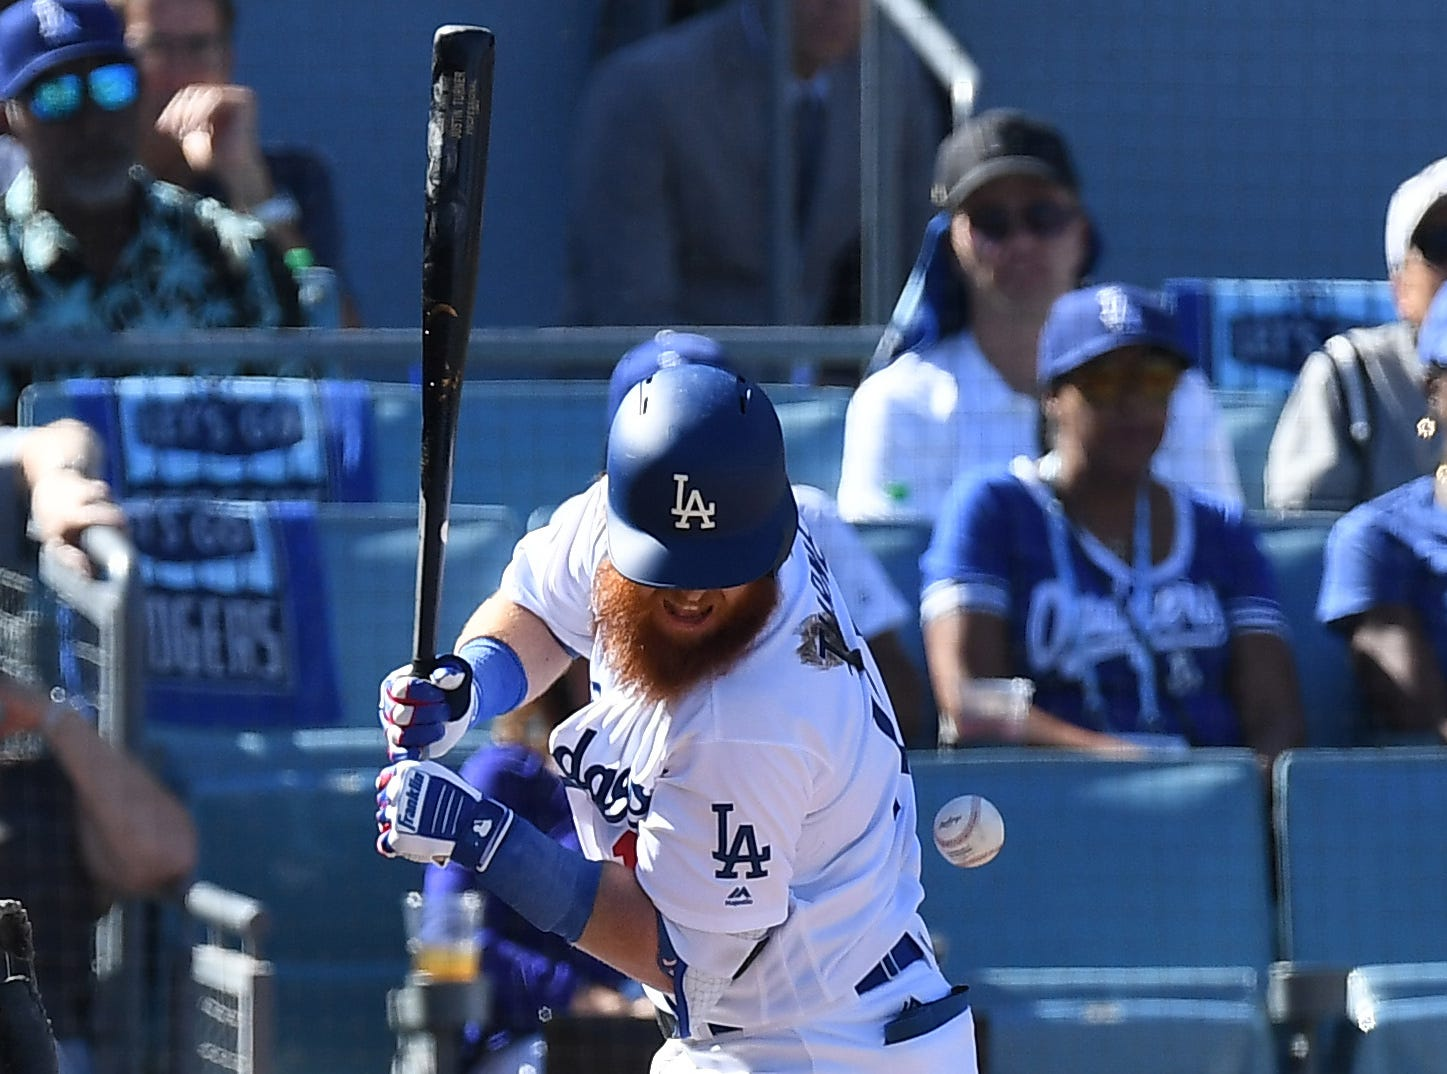 NLCS Game 5: Justin Turner gets hit by a pitch in the first inning.